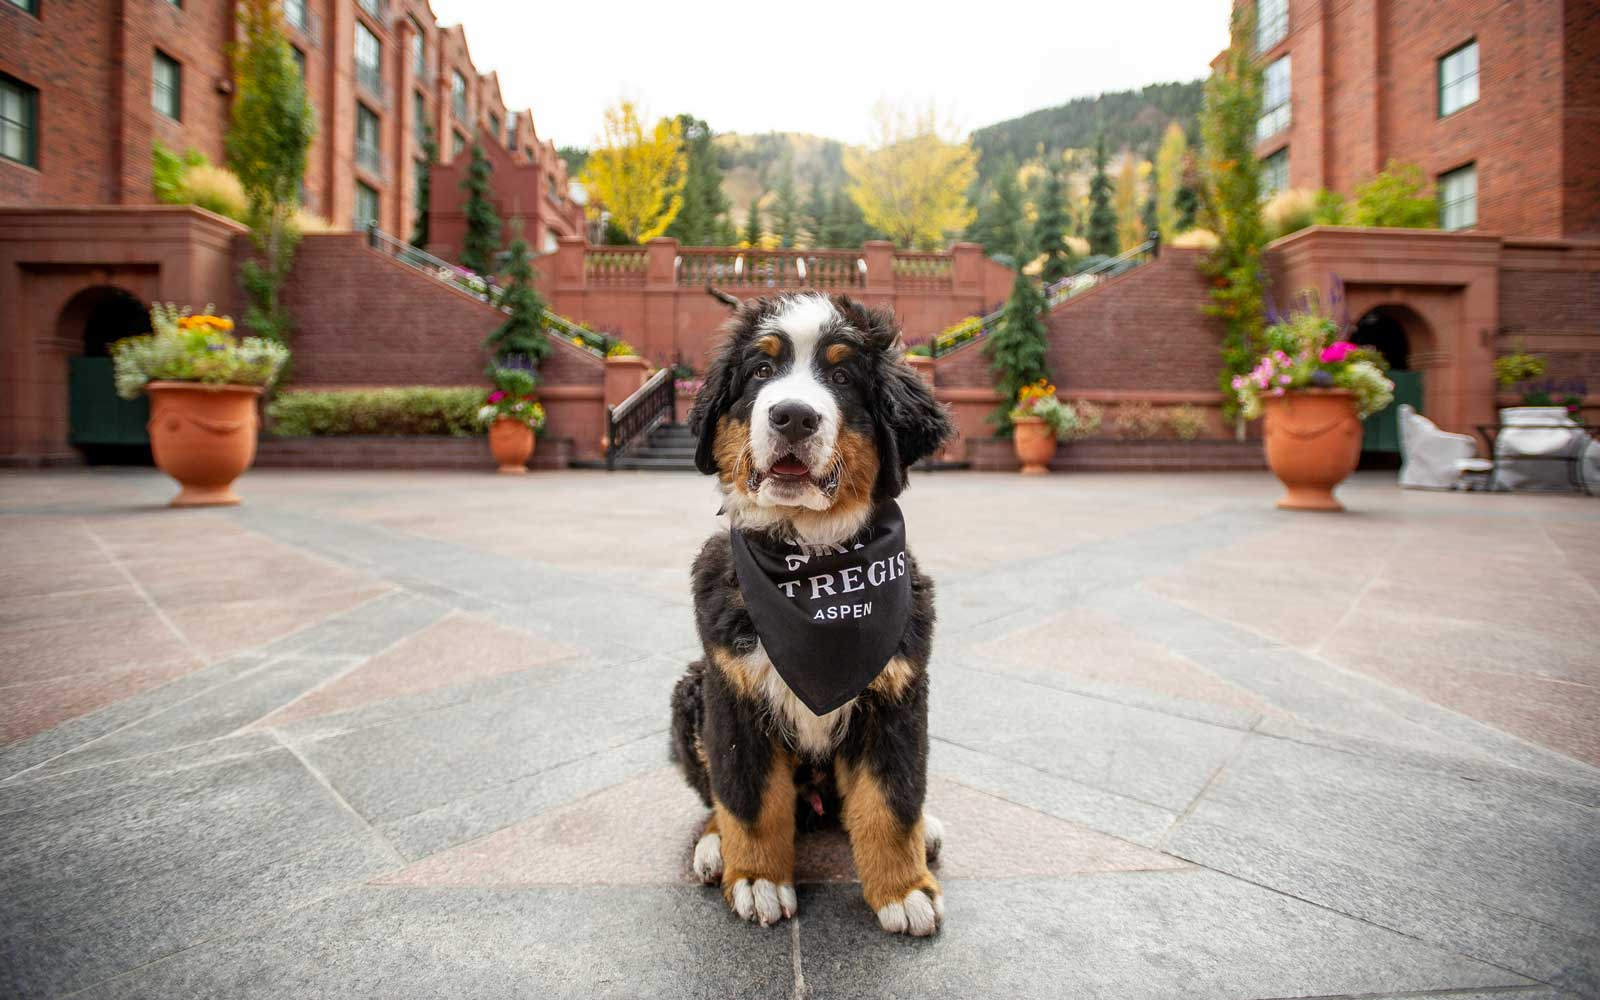 The St. Regis Aspen Got a Bernese Mountain Dog Puppy and His Instagram Is Truly Winter Magic